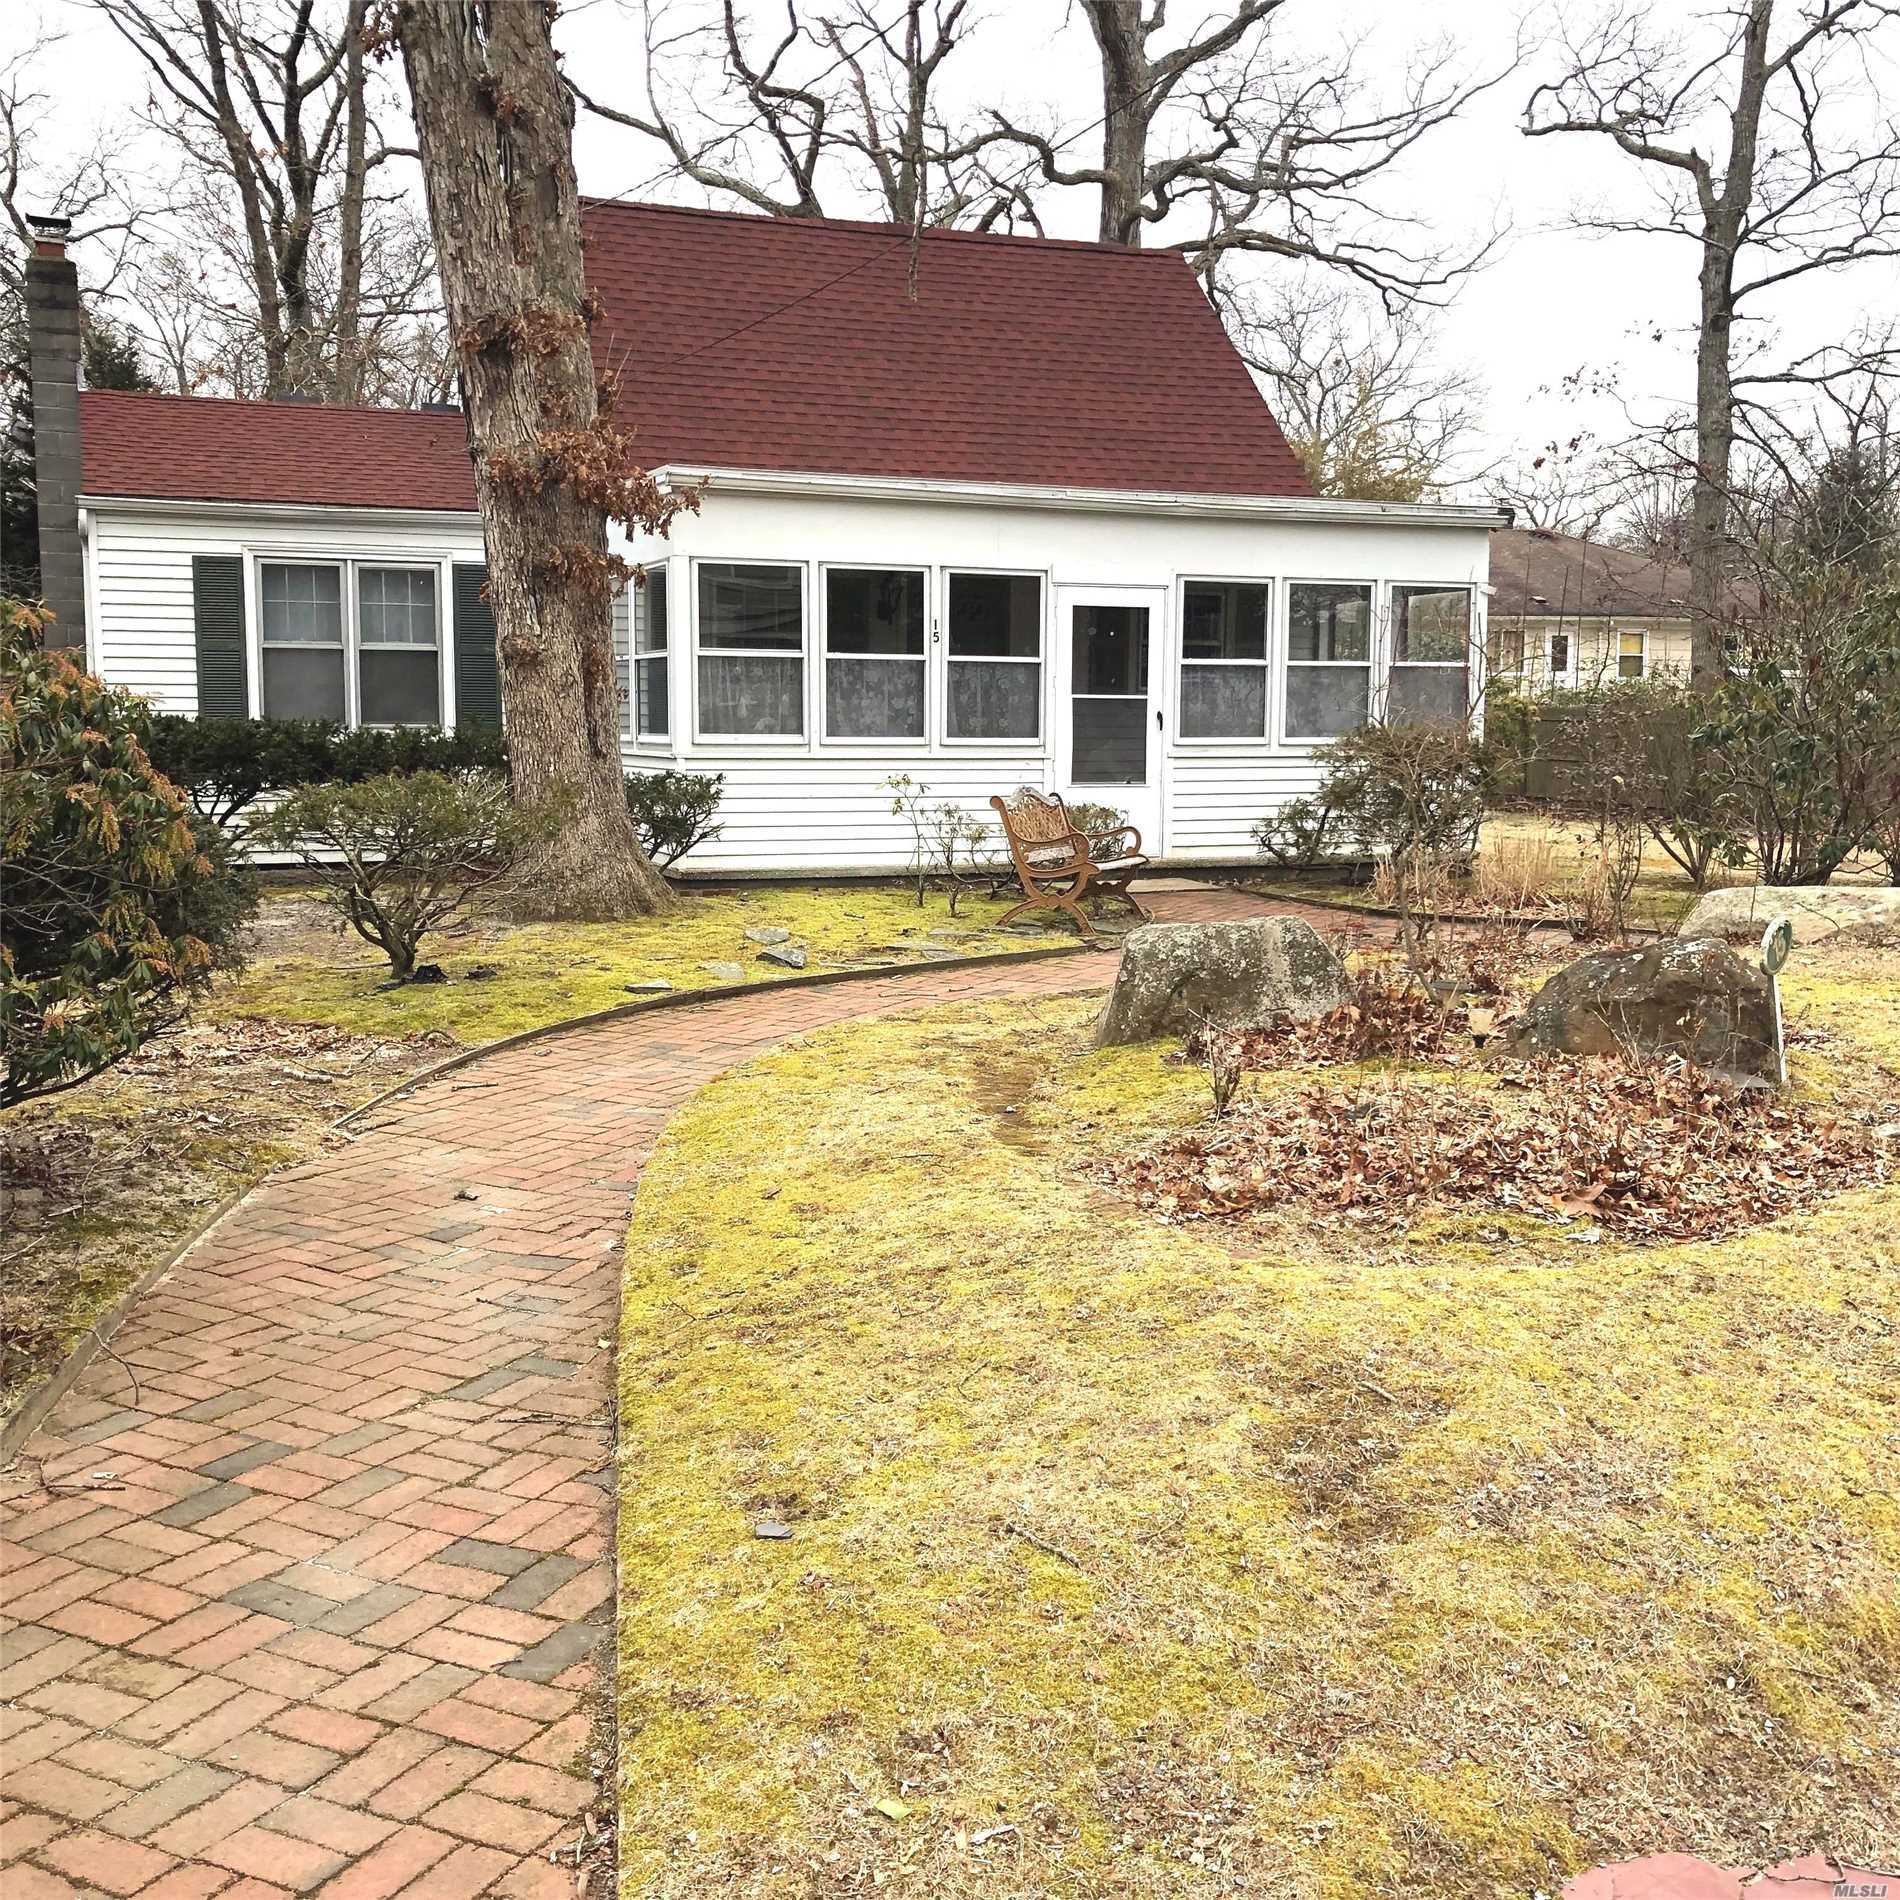 This Cozy Cottage In Bay View Pines Is A Fantastic Starter Home Or Summer Cottage! Close To Deeded Sandy Bay Beach And County Parks. New Roof Installed In 2018. 3 Season Front Porch. Nicely Sized Rear Deck And Shed. Master Bedroom On First Floor. Low Taxes! This Is Southamptons Best Kept Secret. Close To All The East End Has To Offer On Both The North And South Forks!